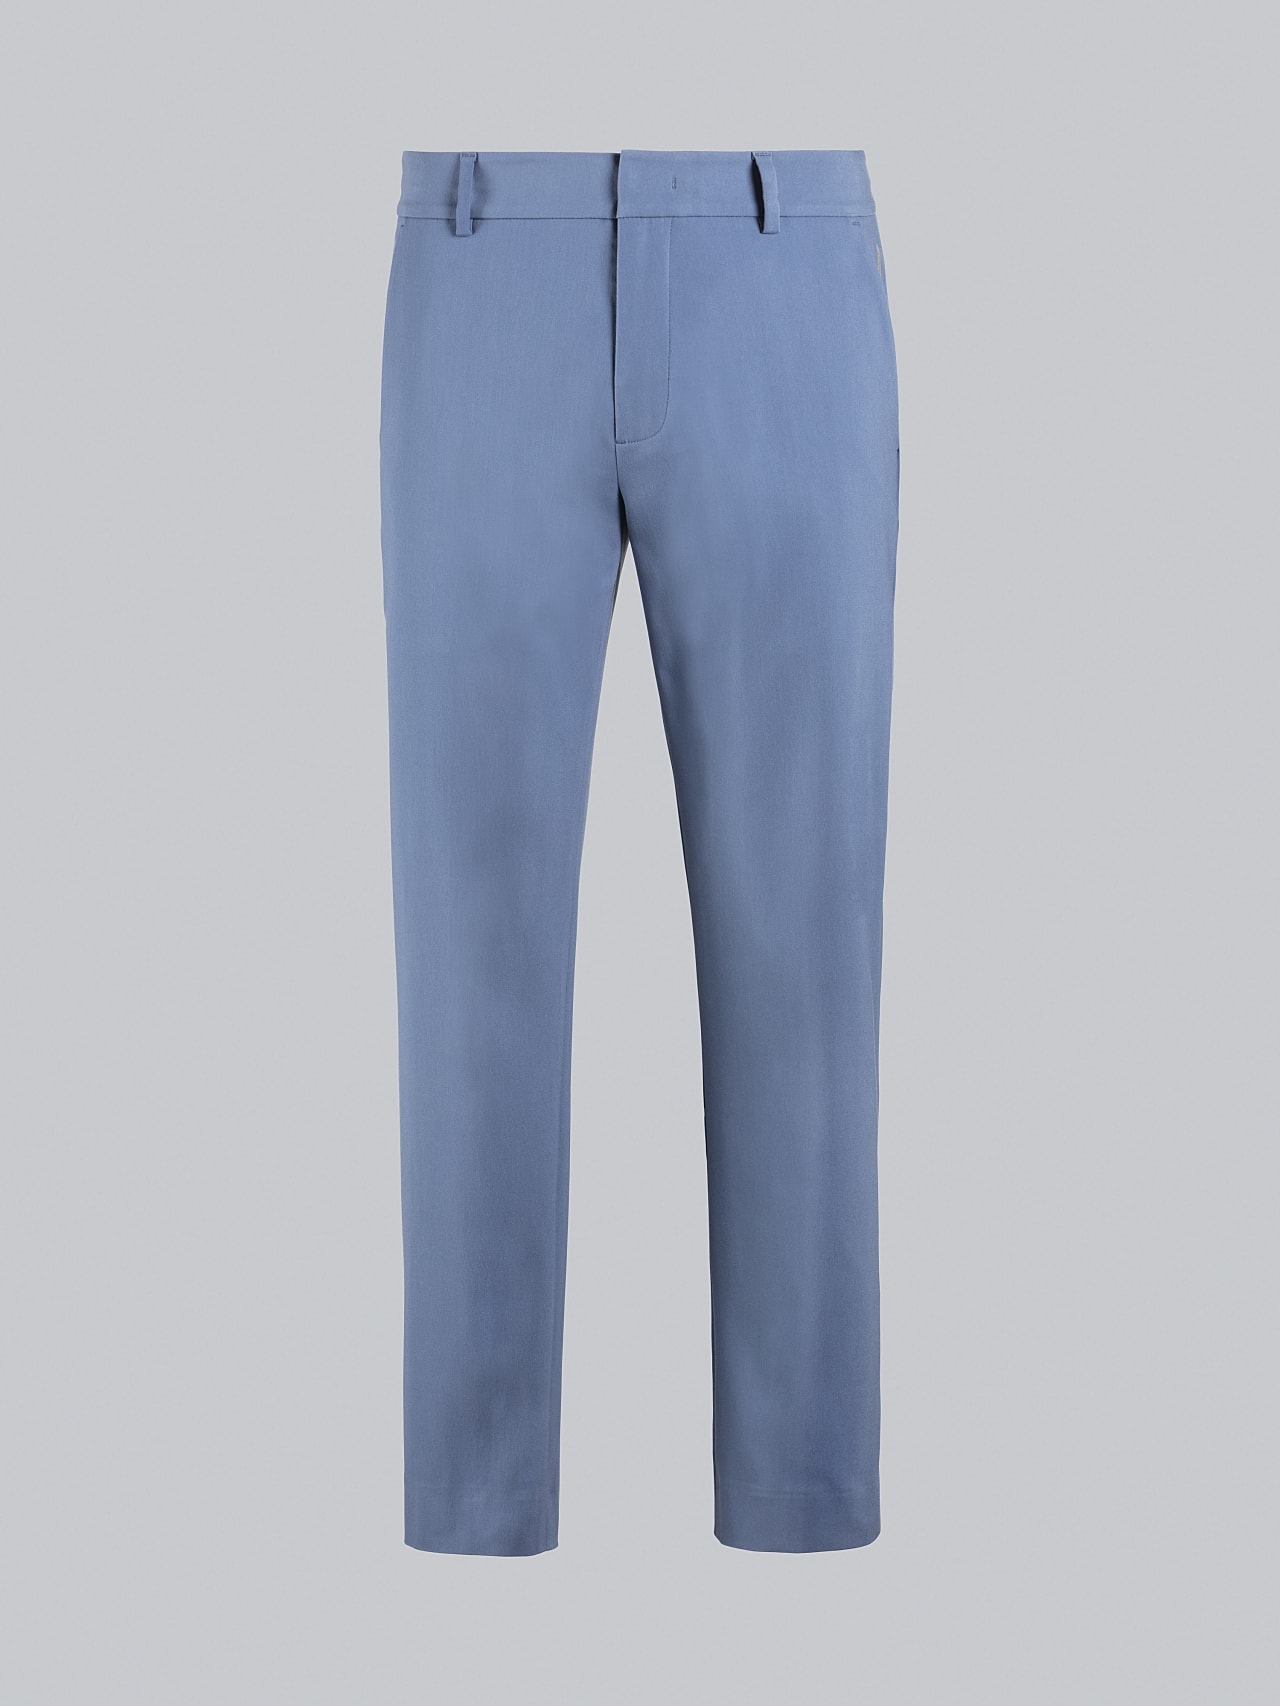 PELAN V1.Y5.02 Tapered Pants with Pleats light blue Back Alpha Tauri